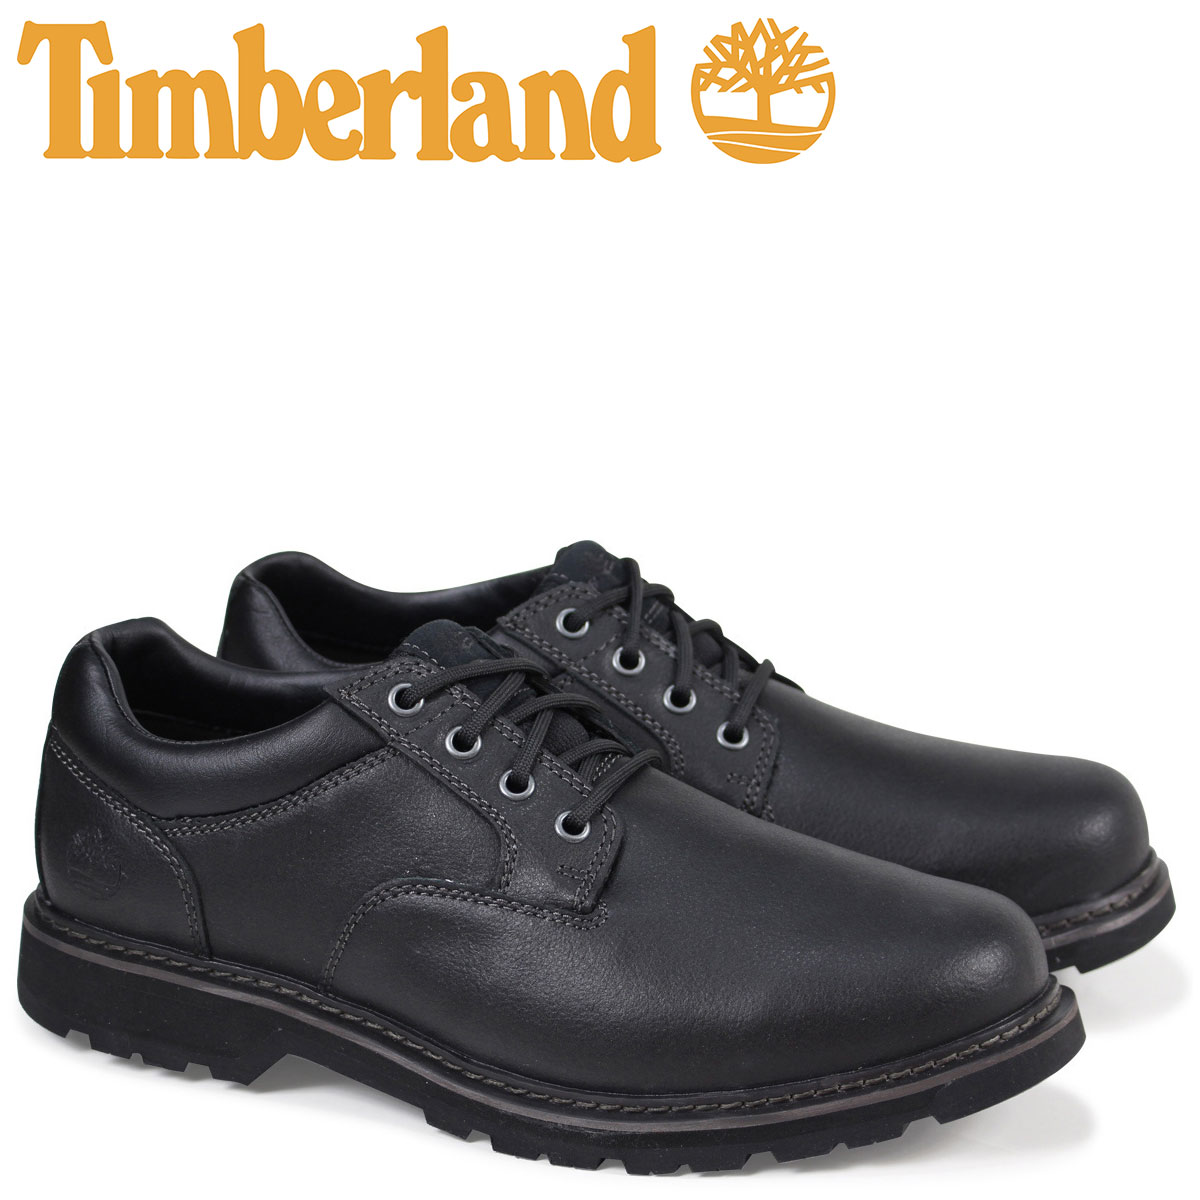 shoes of timberland